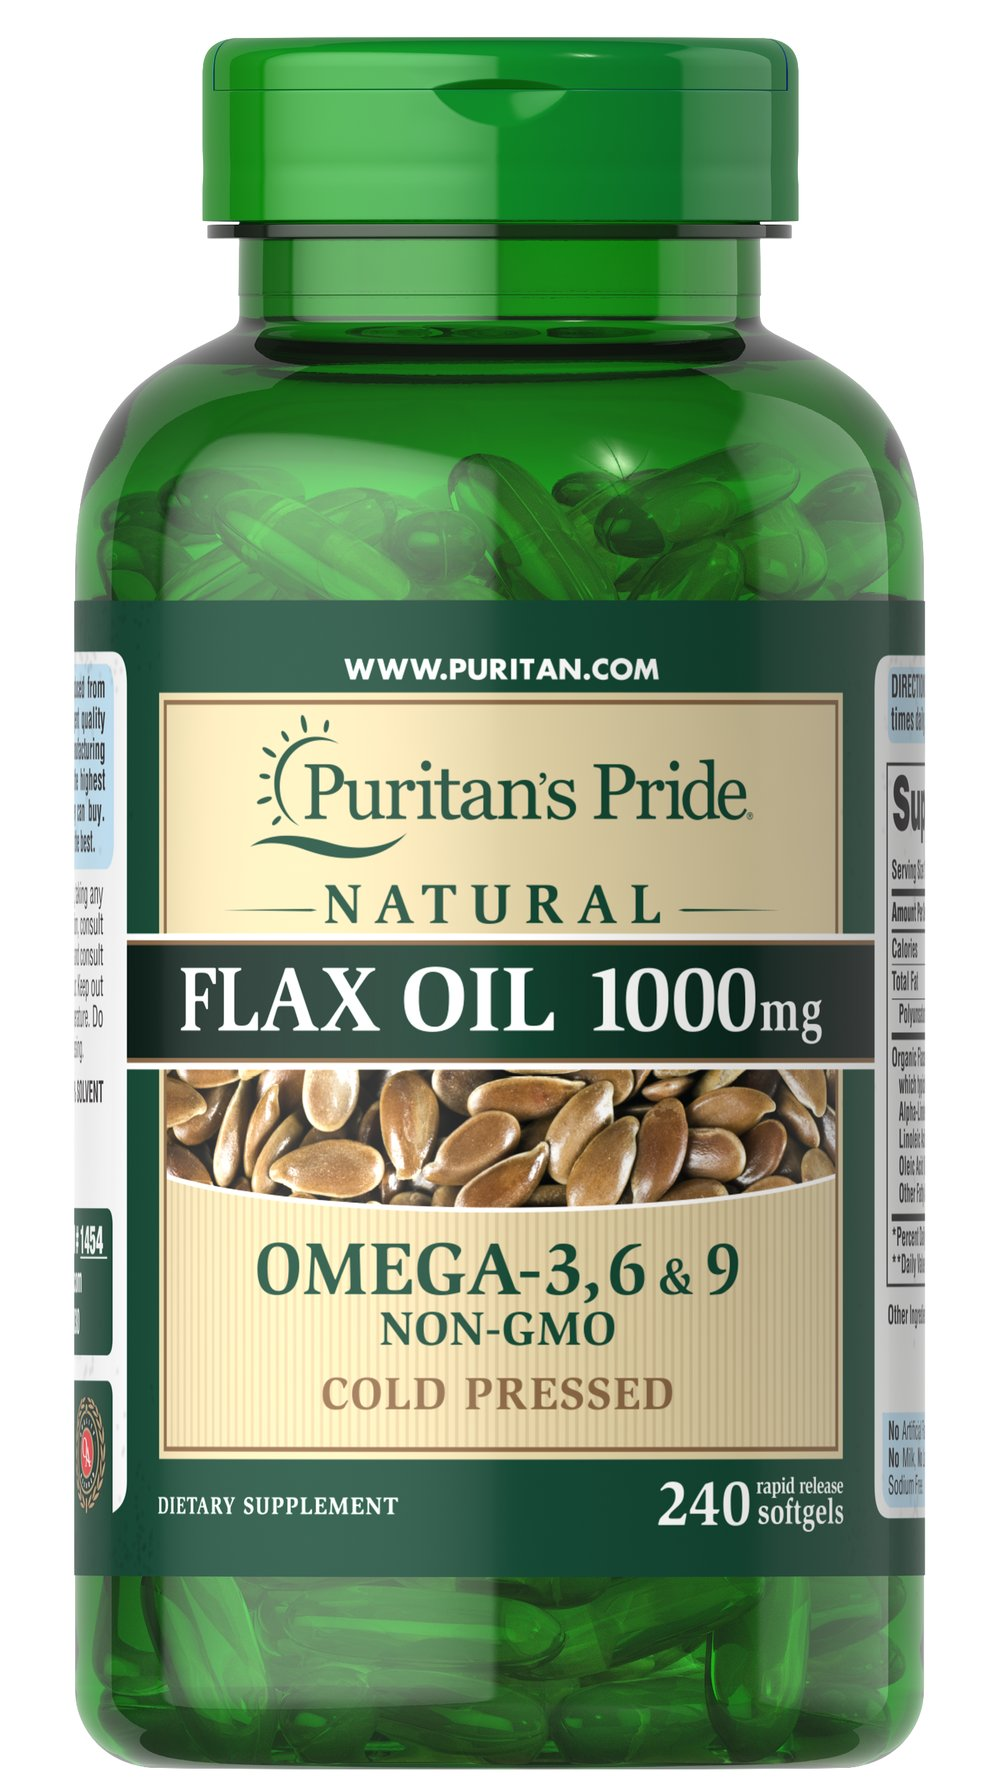 Non-GMO Natural Flax Oil 1000 mg